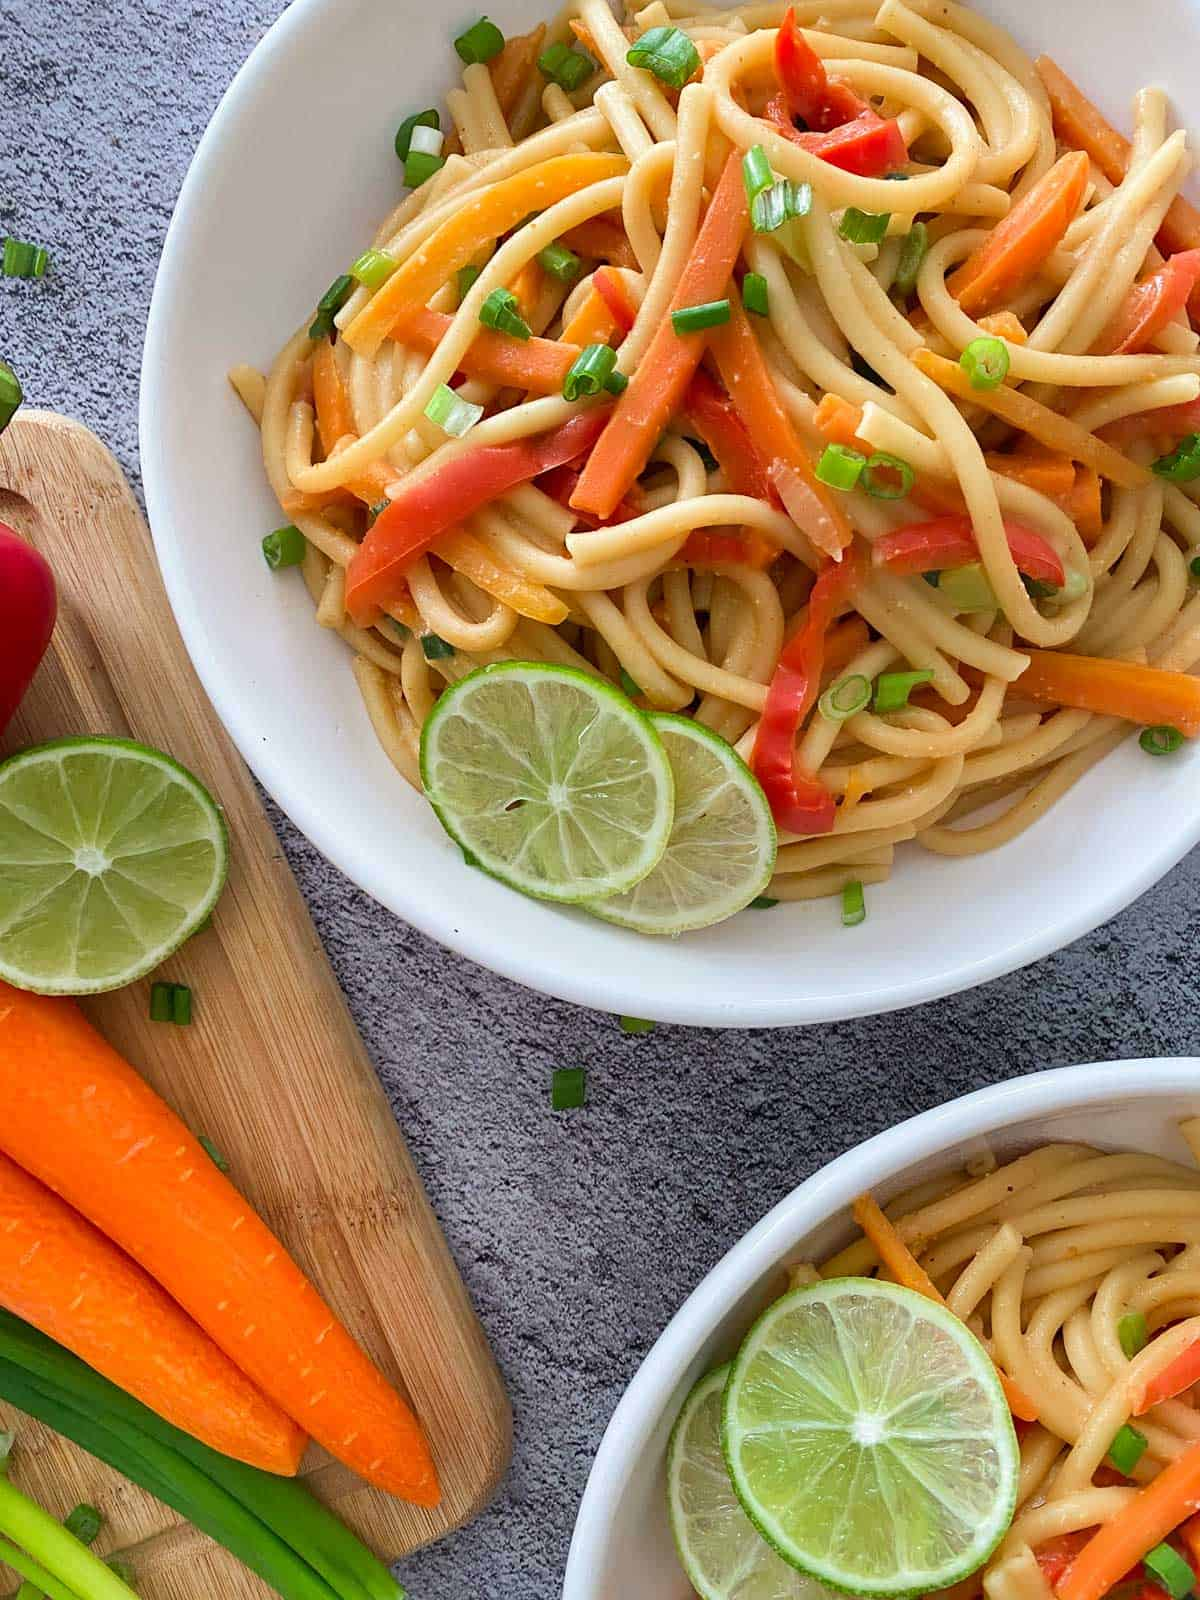 Plate of Thai noodles with carrots and lime on cutting board, beside it.